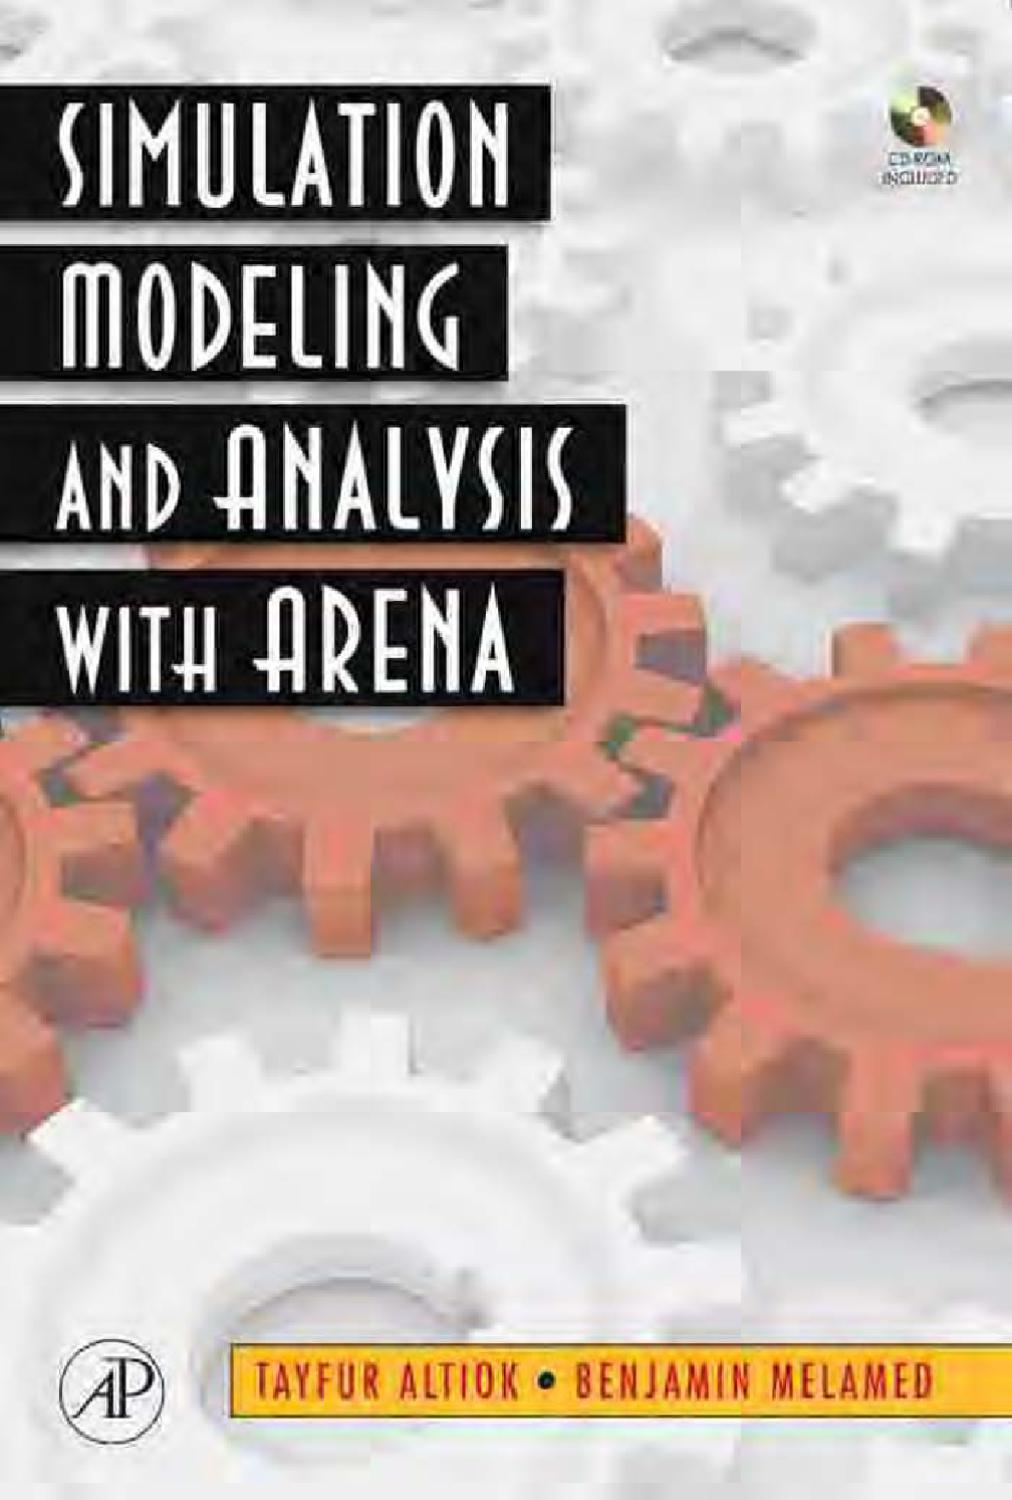 simulation modelling and analysis with arena by agus wibowo